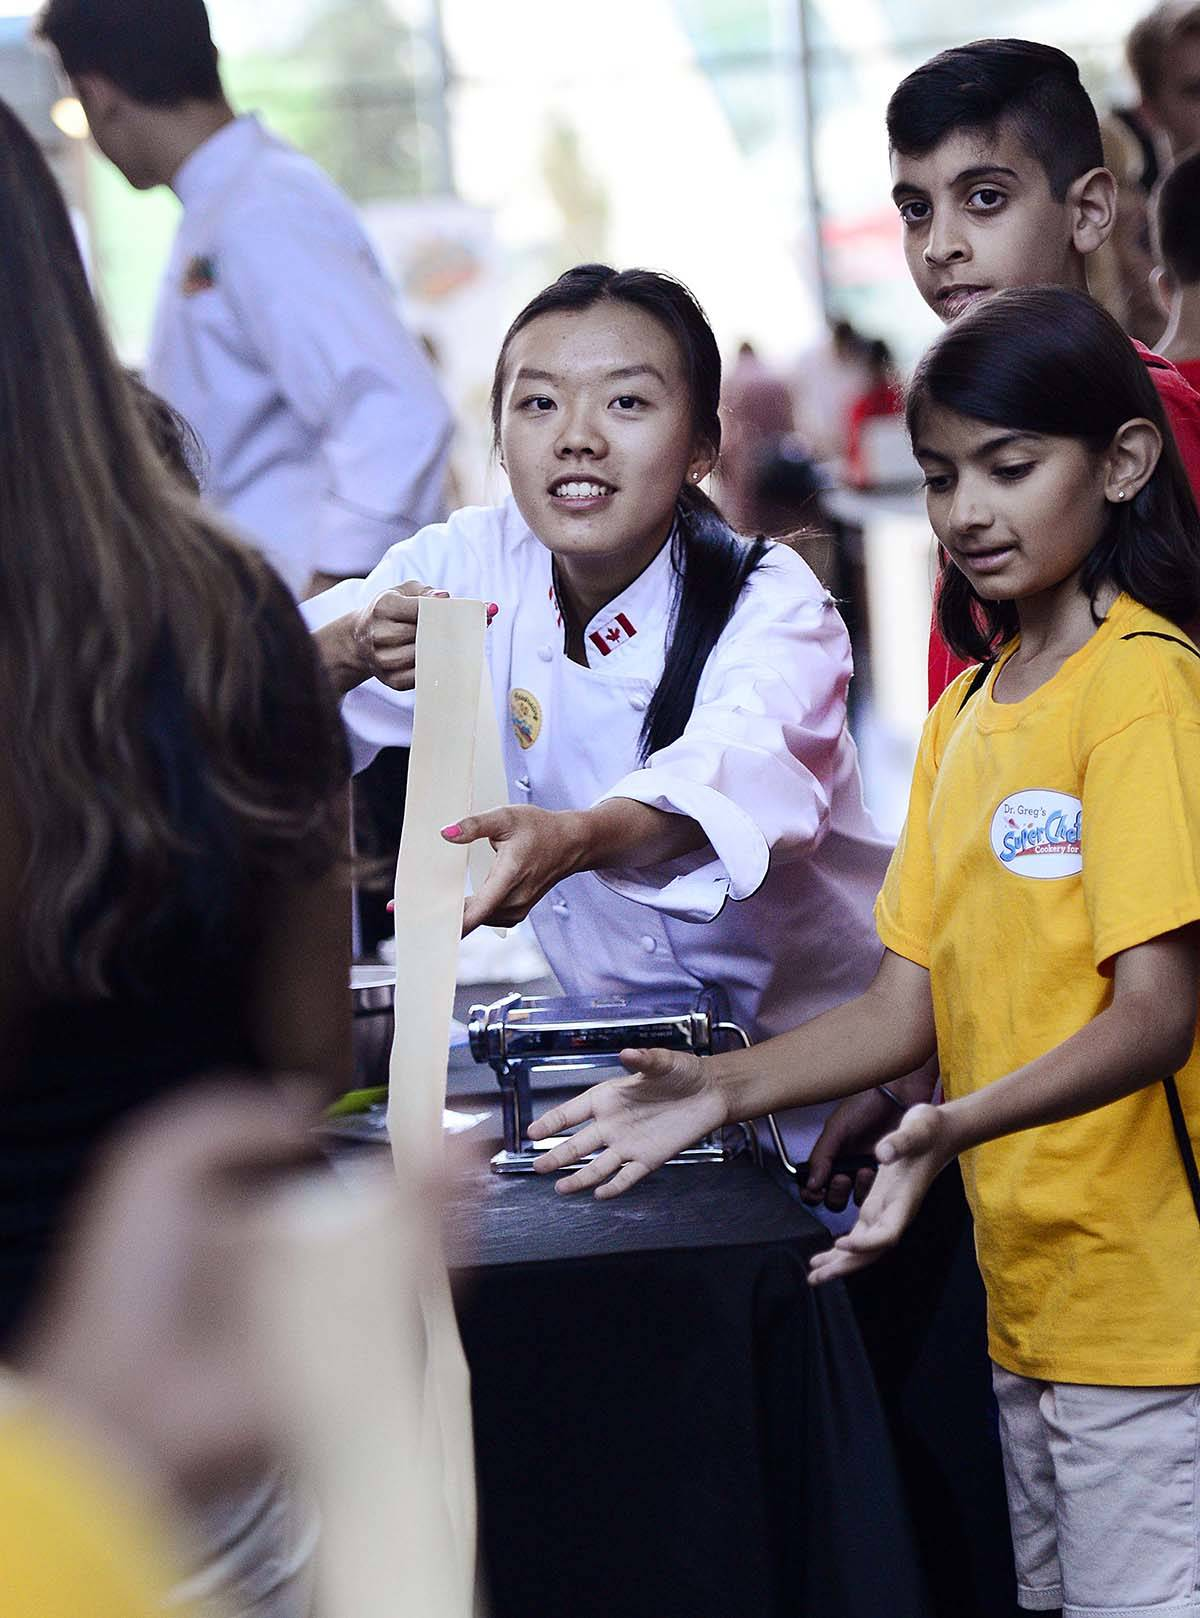 Cook Carissa Wong helps a group of kids make pasta for the long noodle contest during the SuperChefs 10th Anniversary event at City Hall in Surrey, British Columbia, on August 17, 2018. Ryan McLeod/Freelance